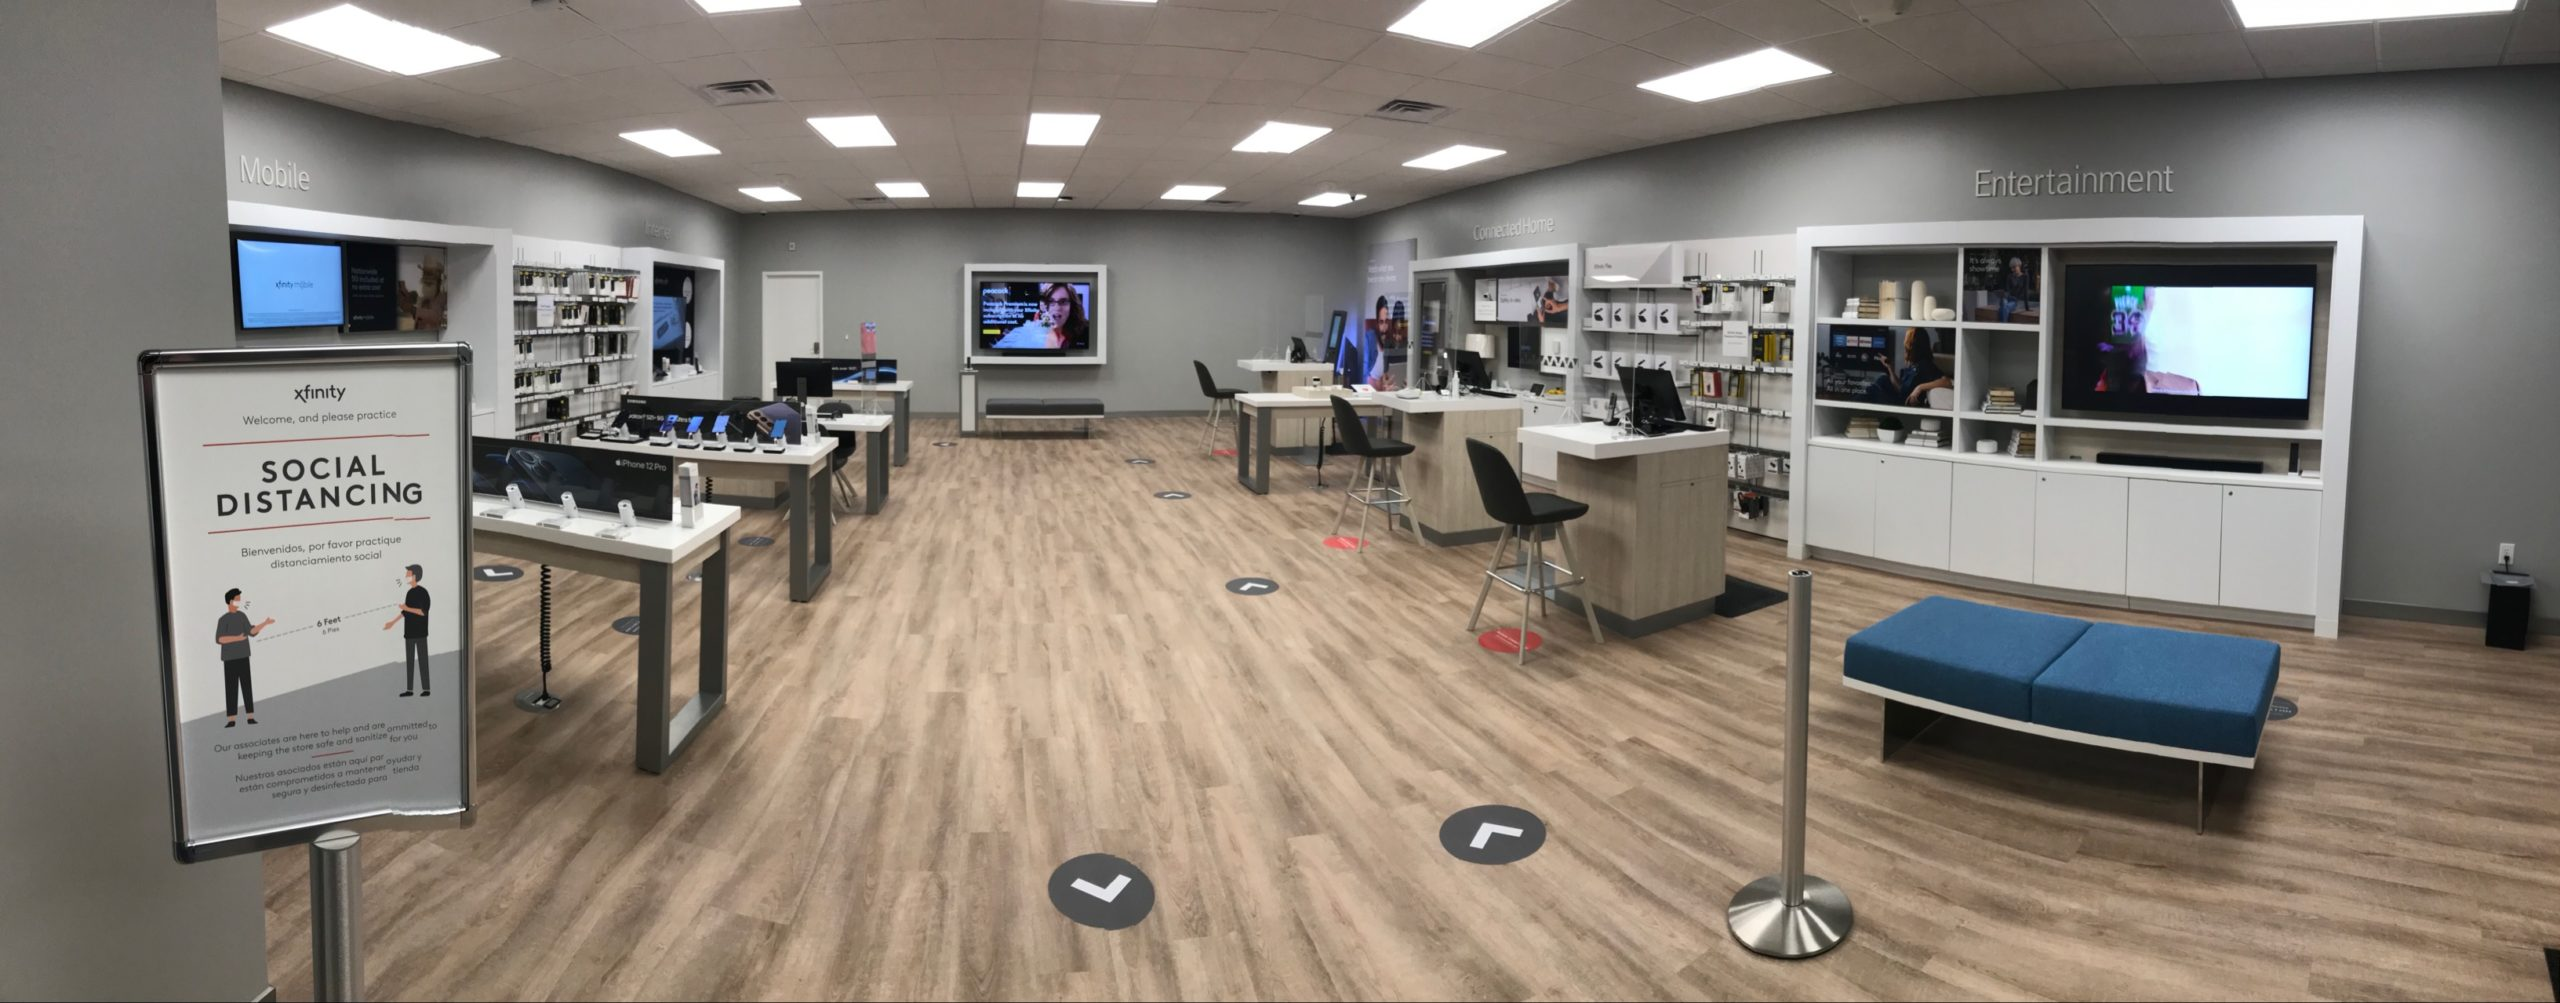 Interior of Lebanon Xfinity Store